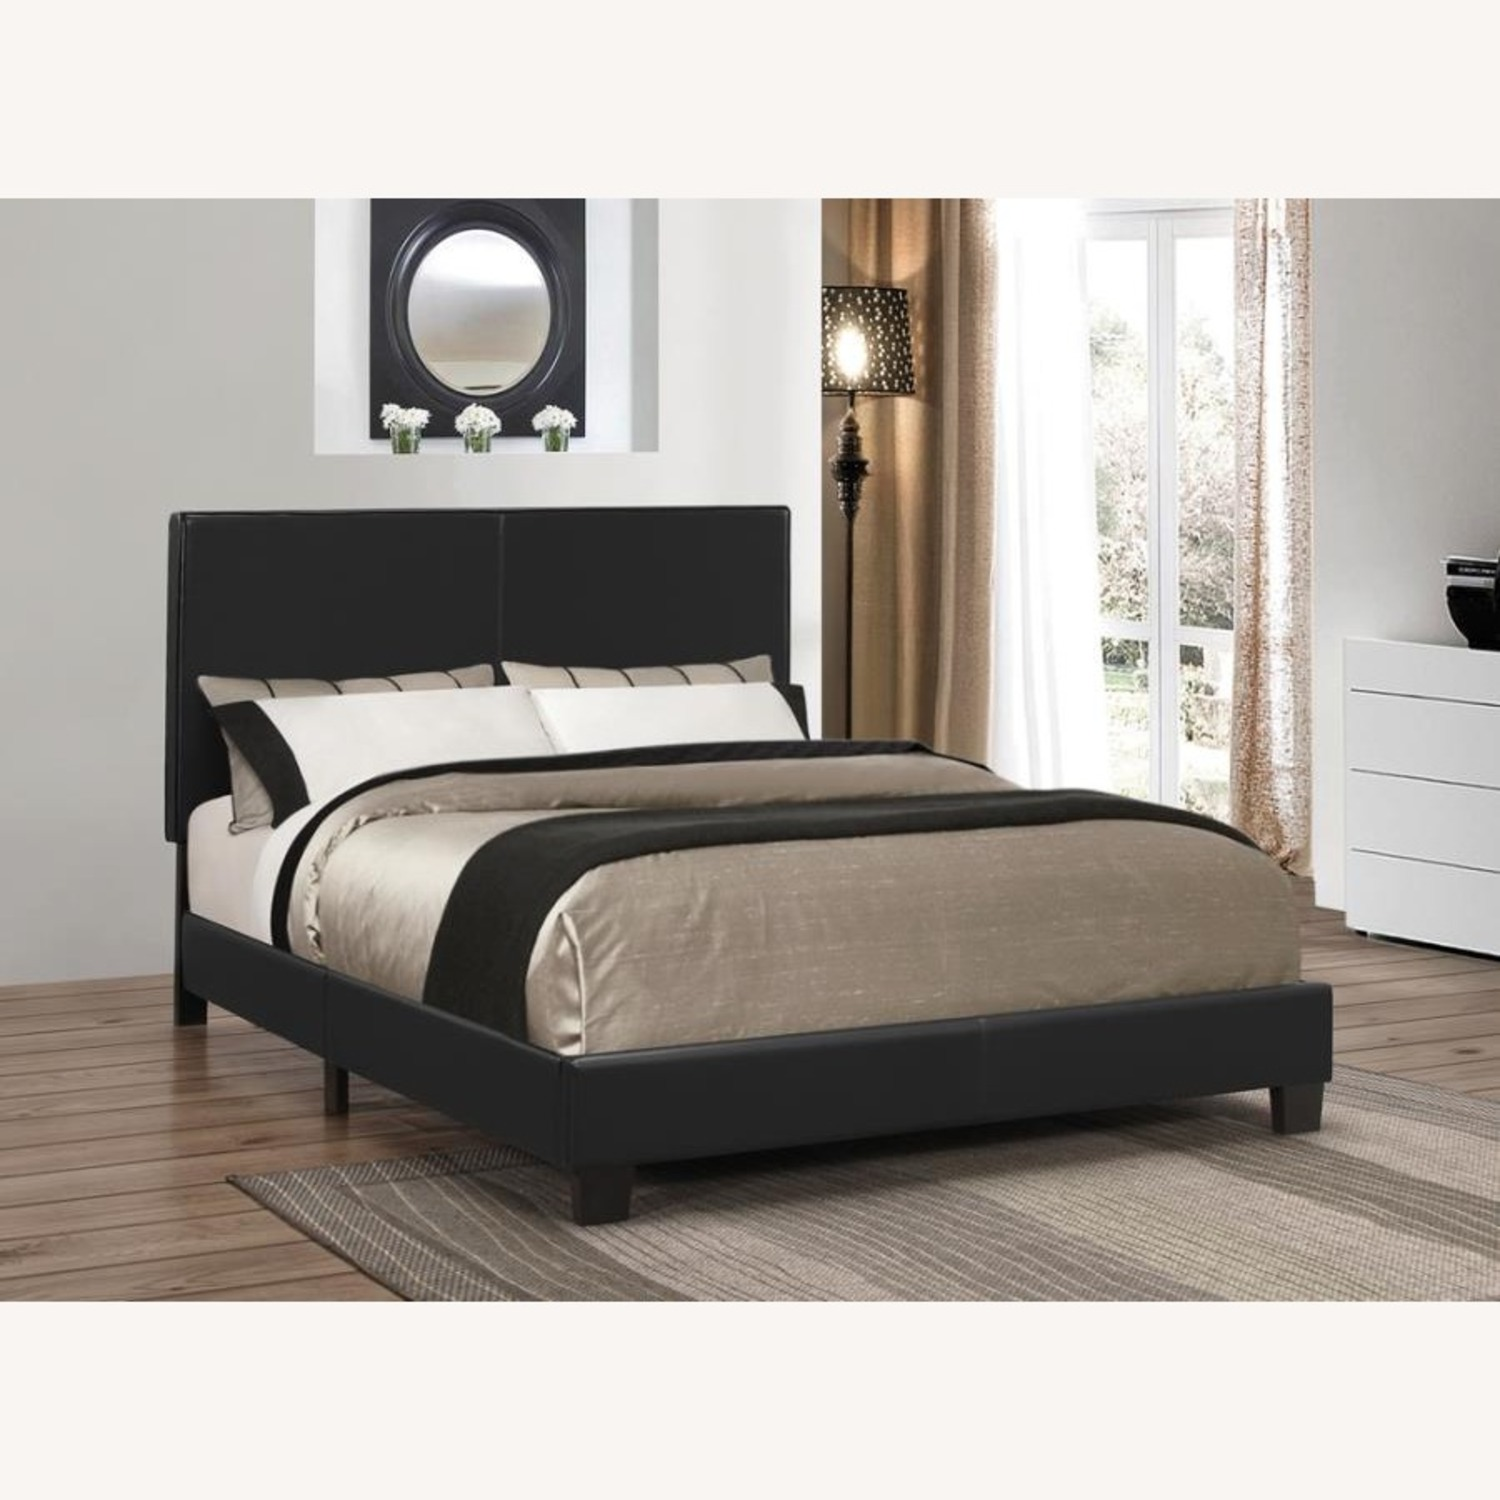 Modern Full Bed In Black Finish - image-1